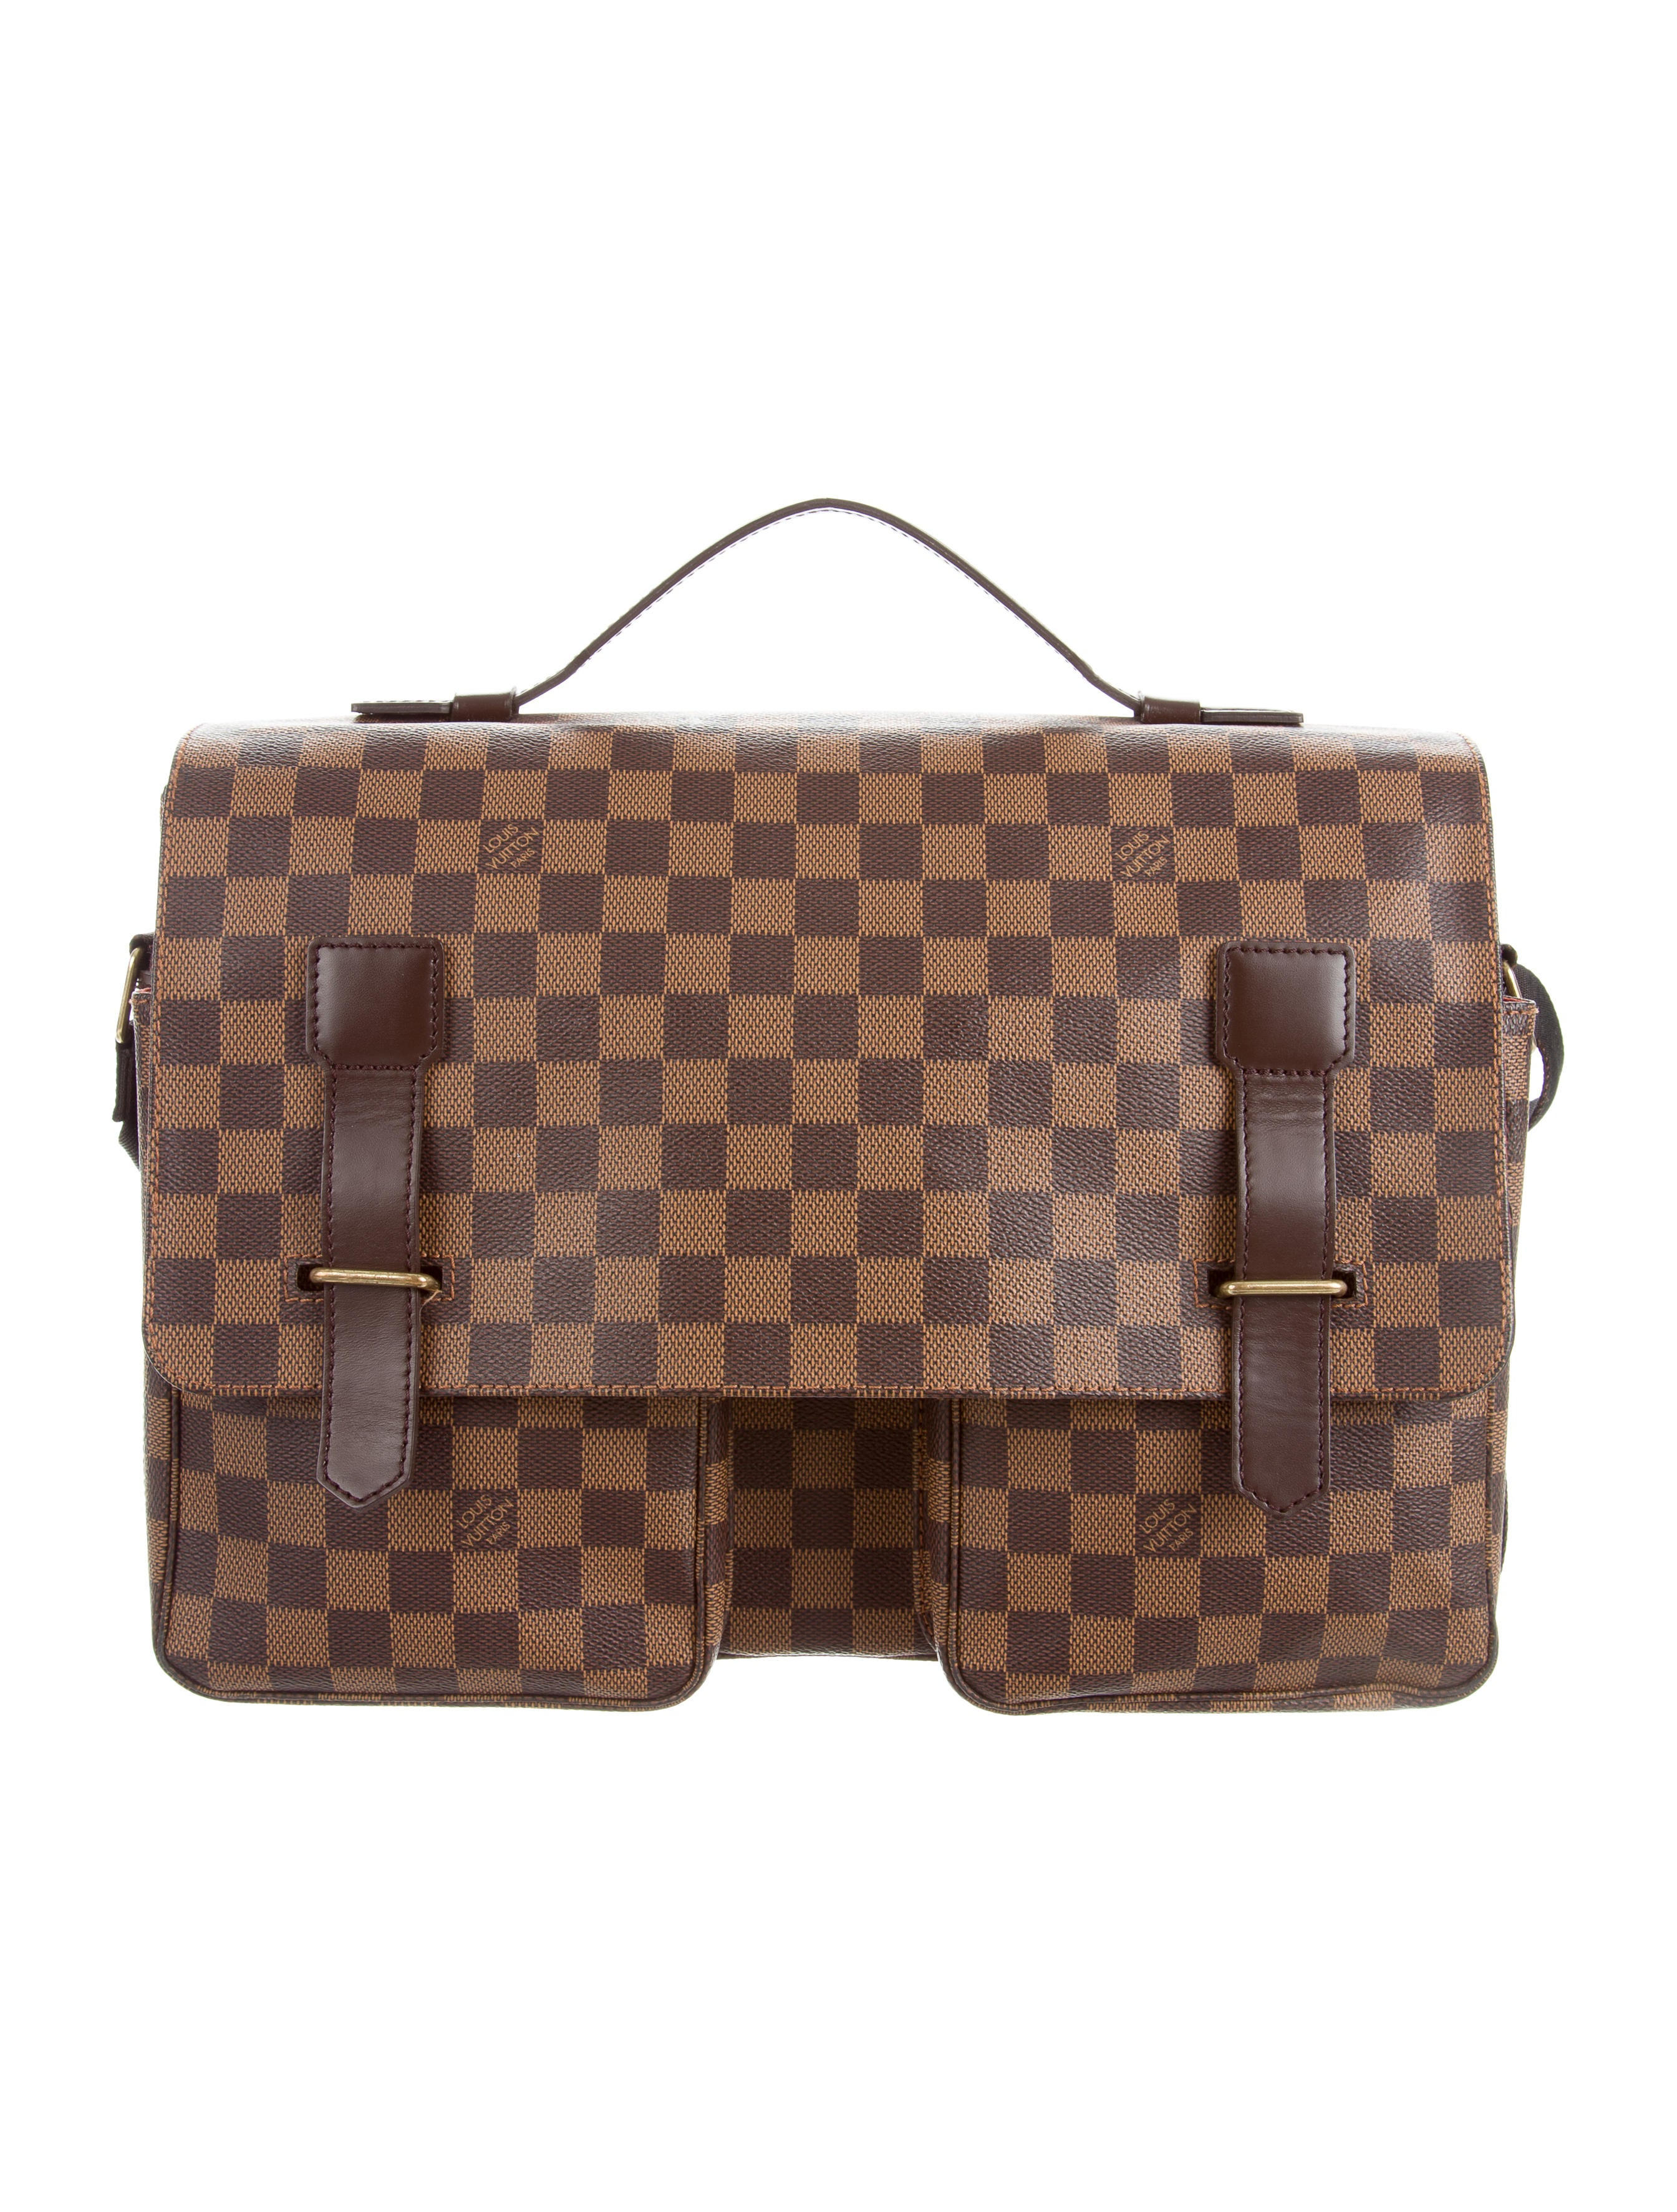 Wonderful Louis Vuitton Monogram Abesses Messenger Bag - Handbags - LOU107969 | The RealReal